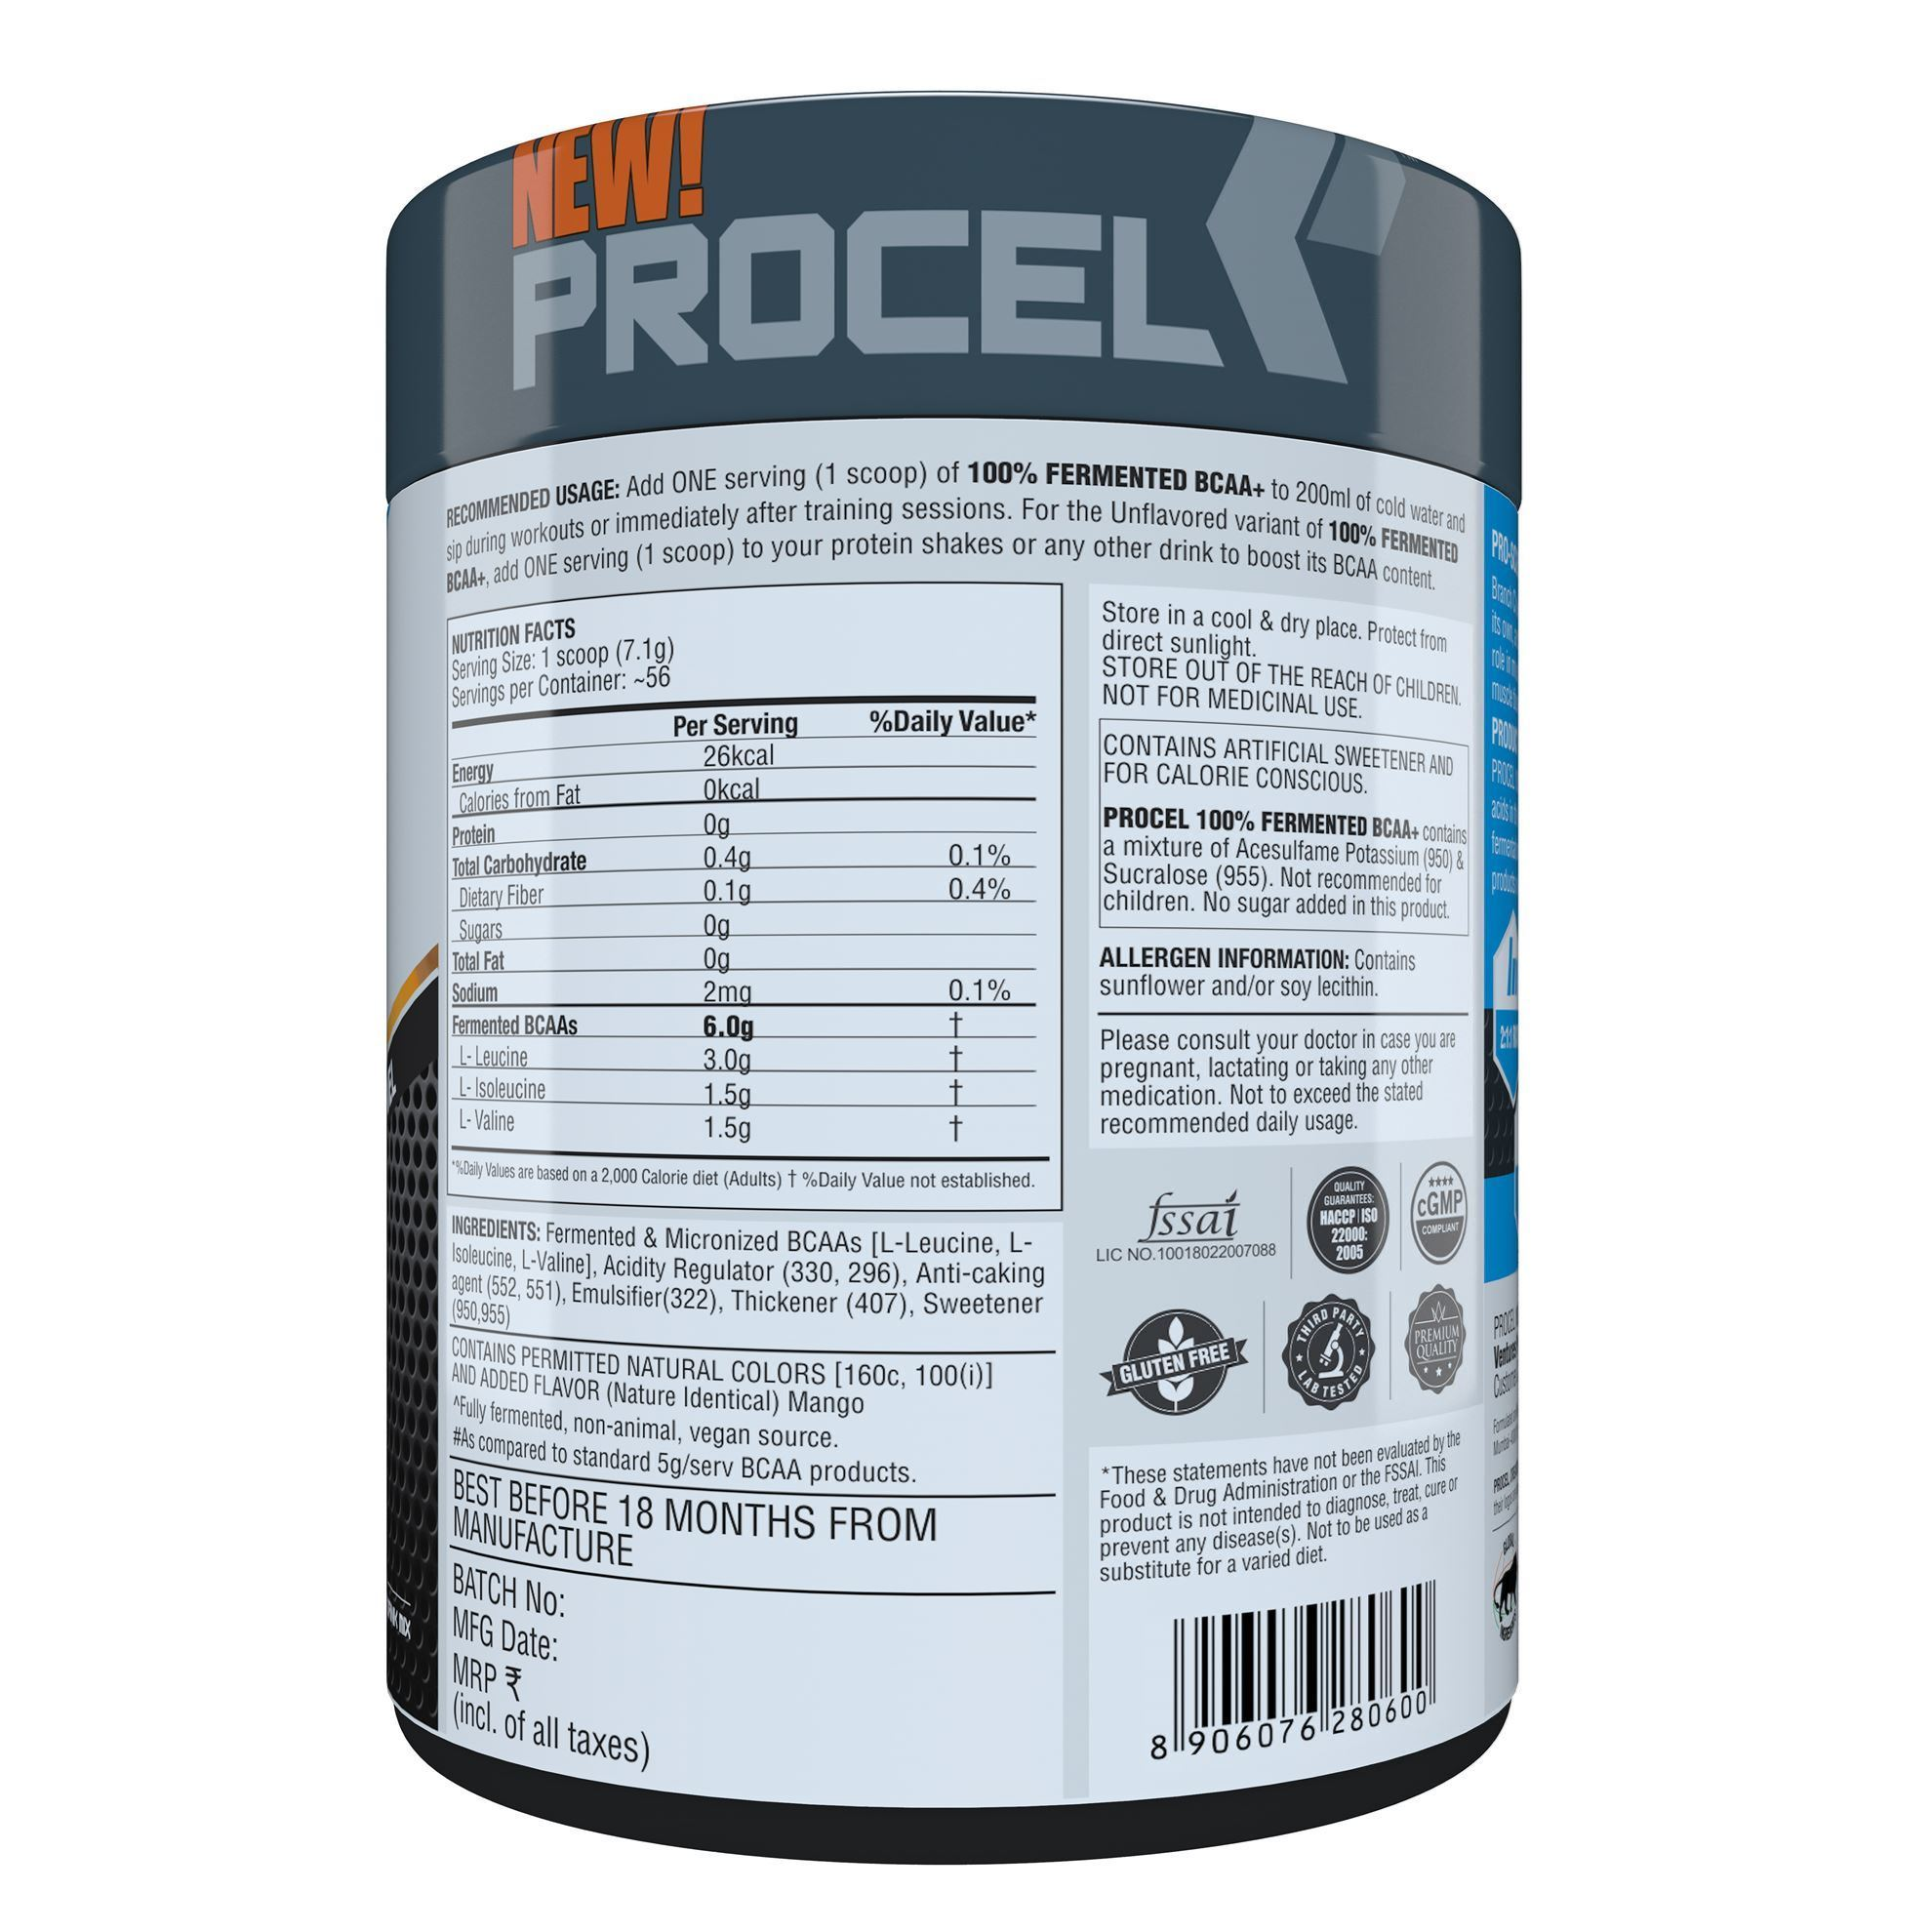 Picture of PROCEL 100% Fermented BCAA+ 400g Tropical Mango - Buy One Get One Free (Short Shelf Life)